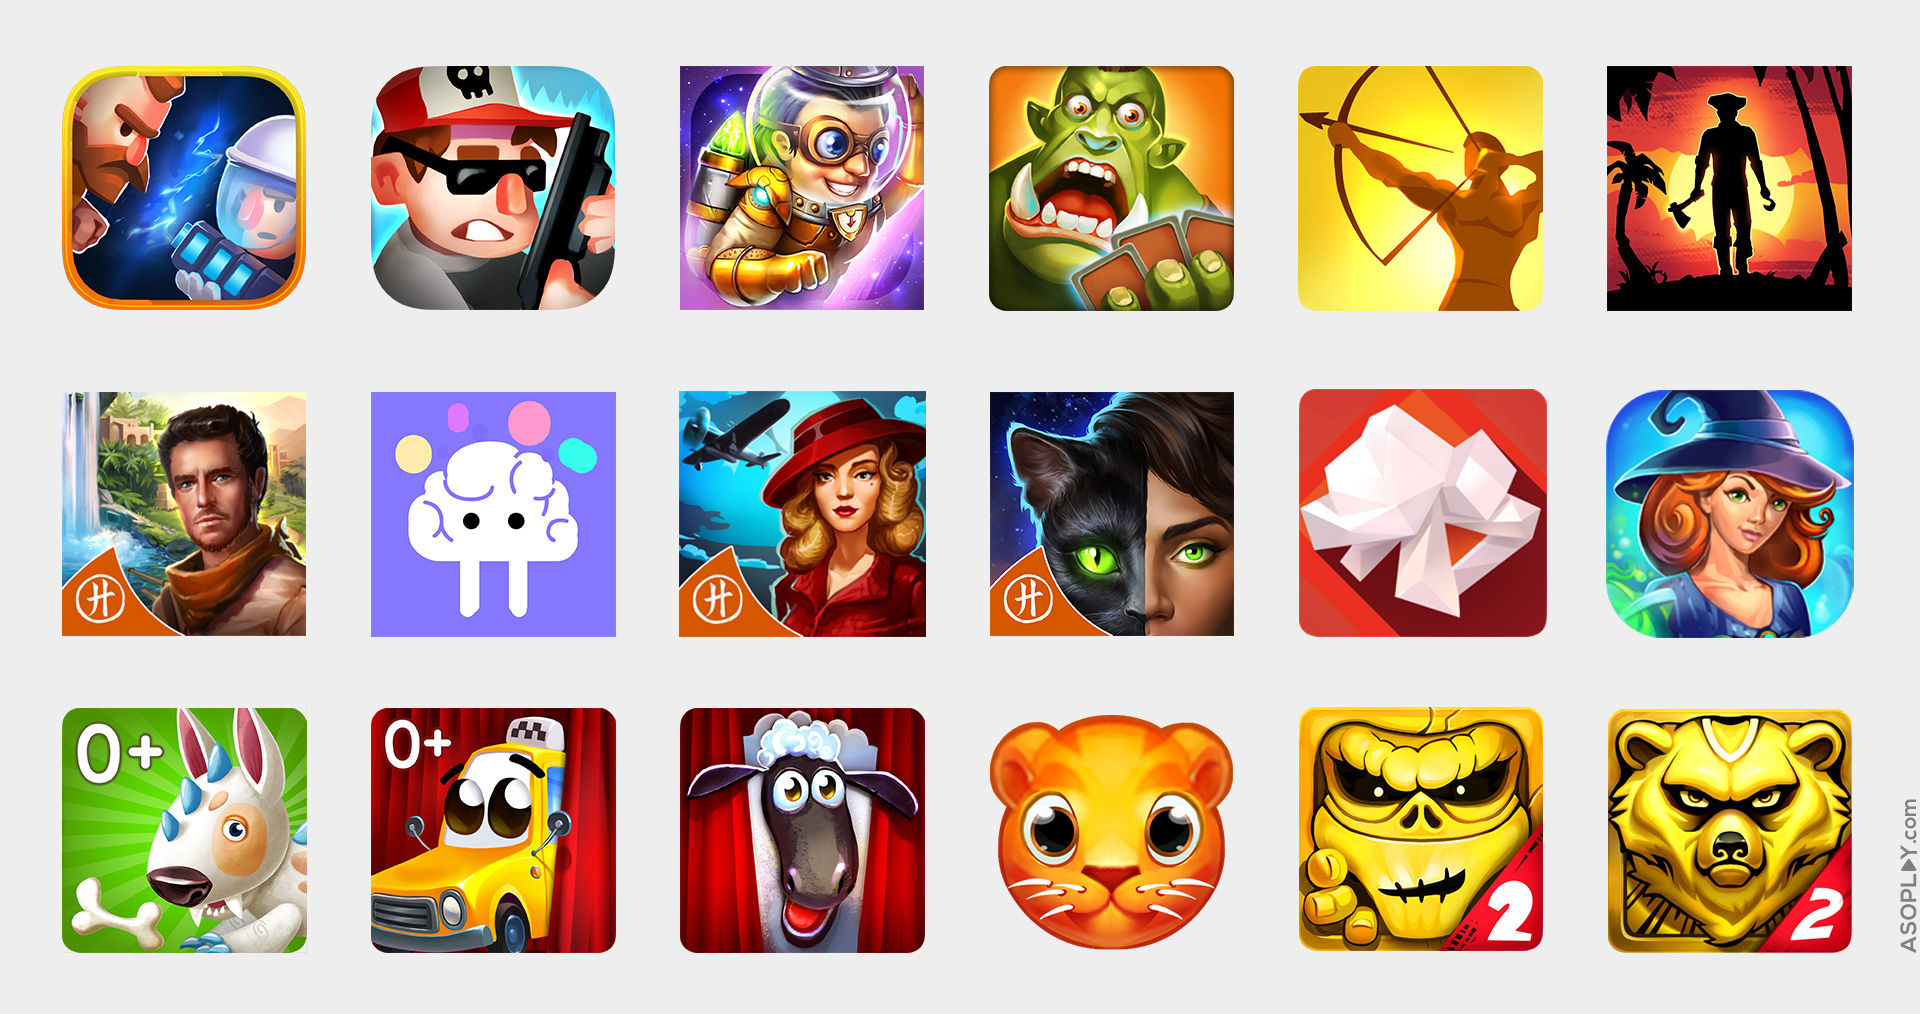 icon design and icon optimization for mobile games and apps